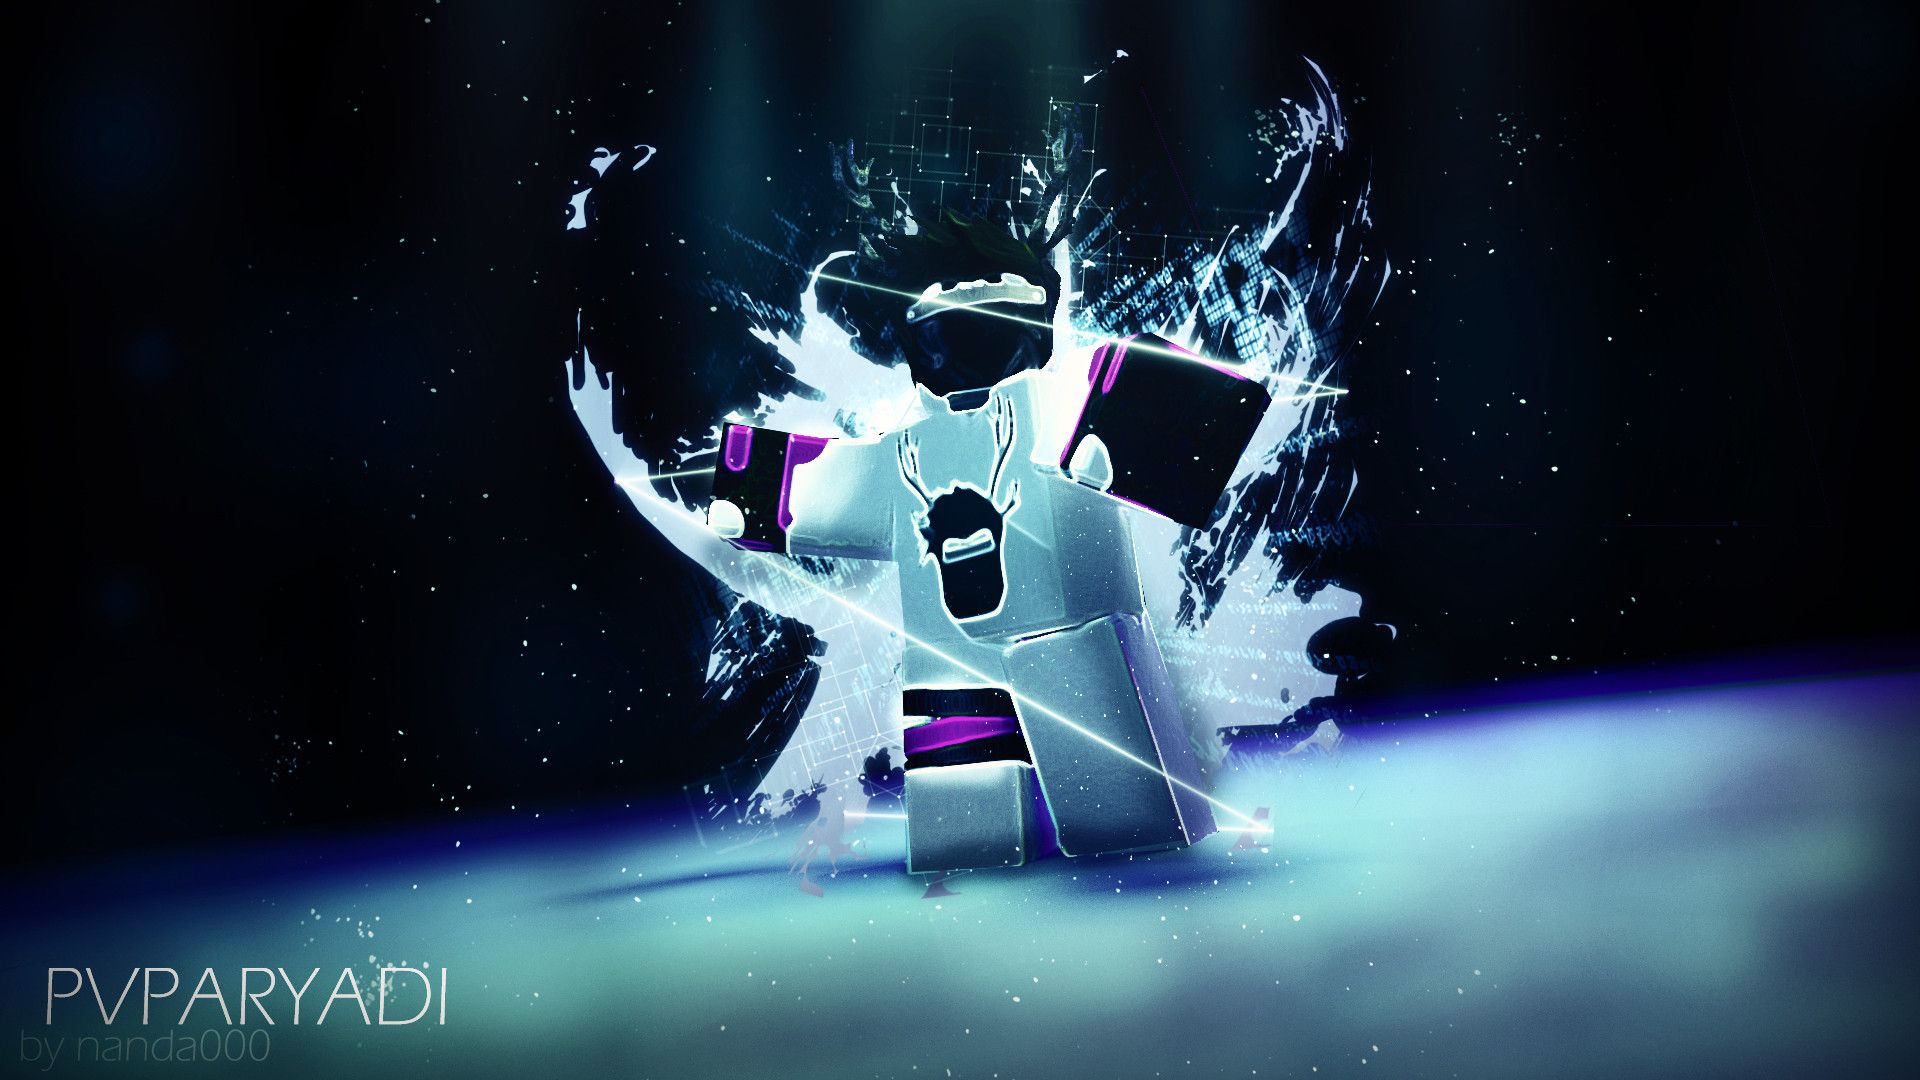 Roblox Galaxy Wallpapers Top Free Roblox Galaxy Backgrounds